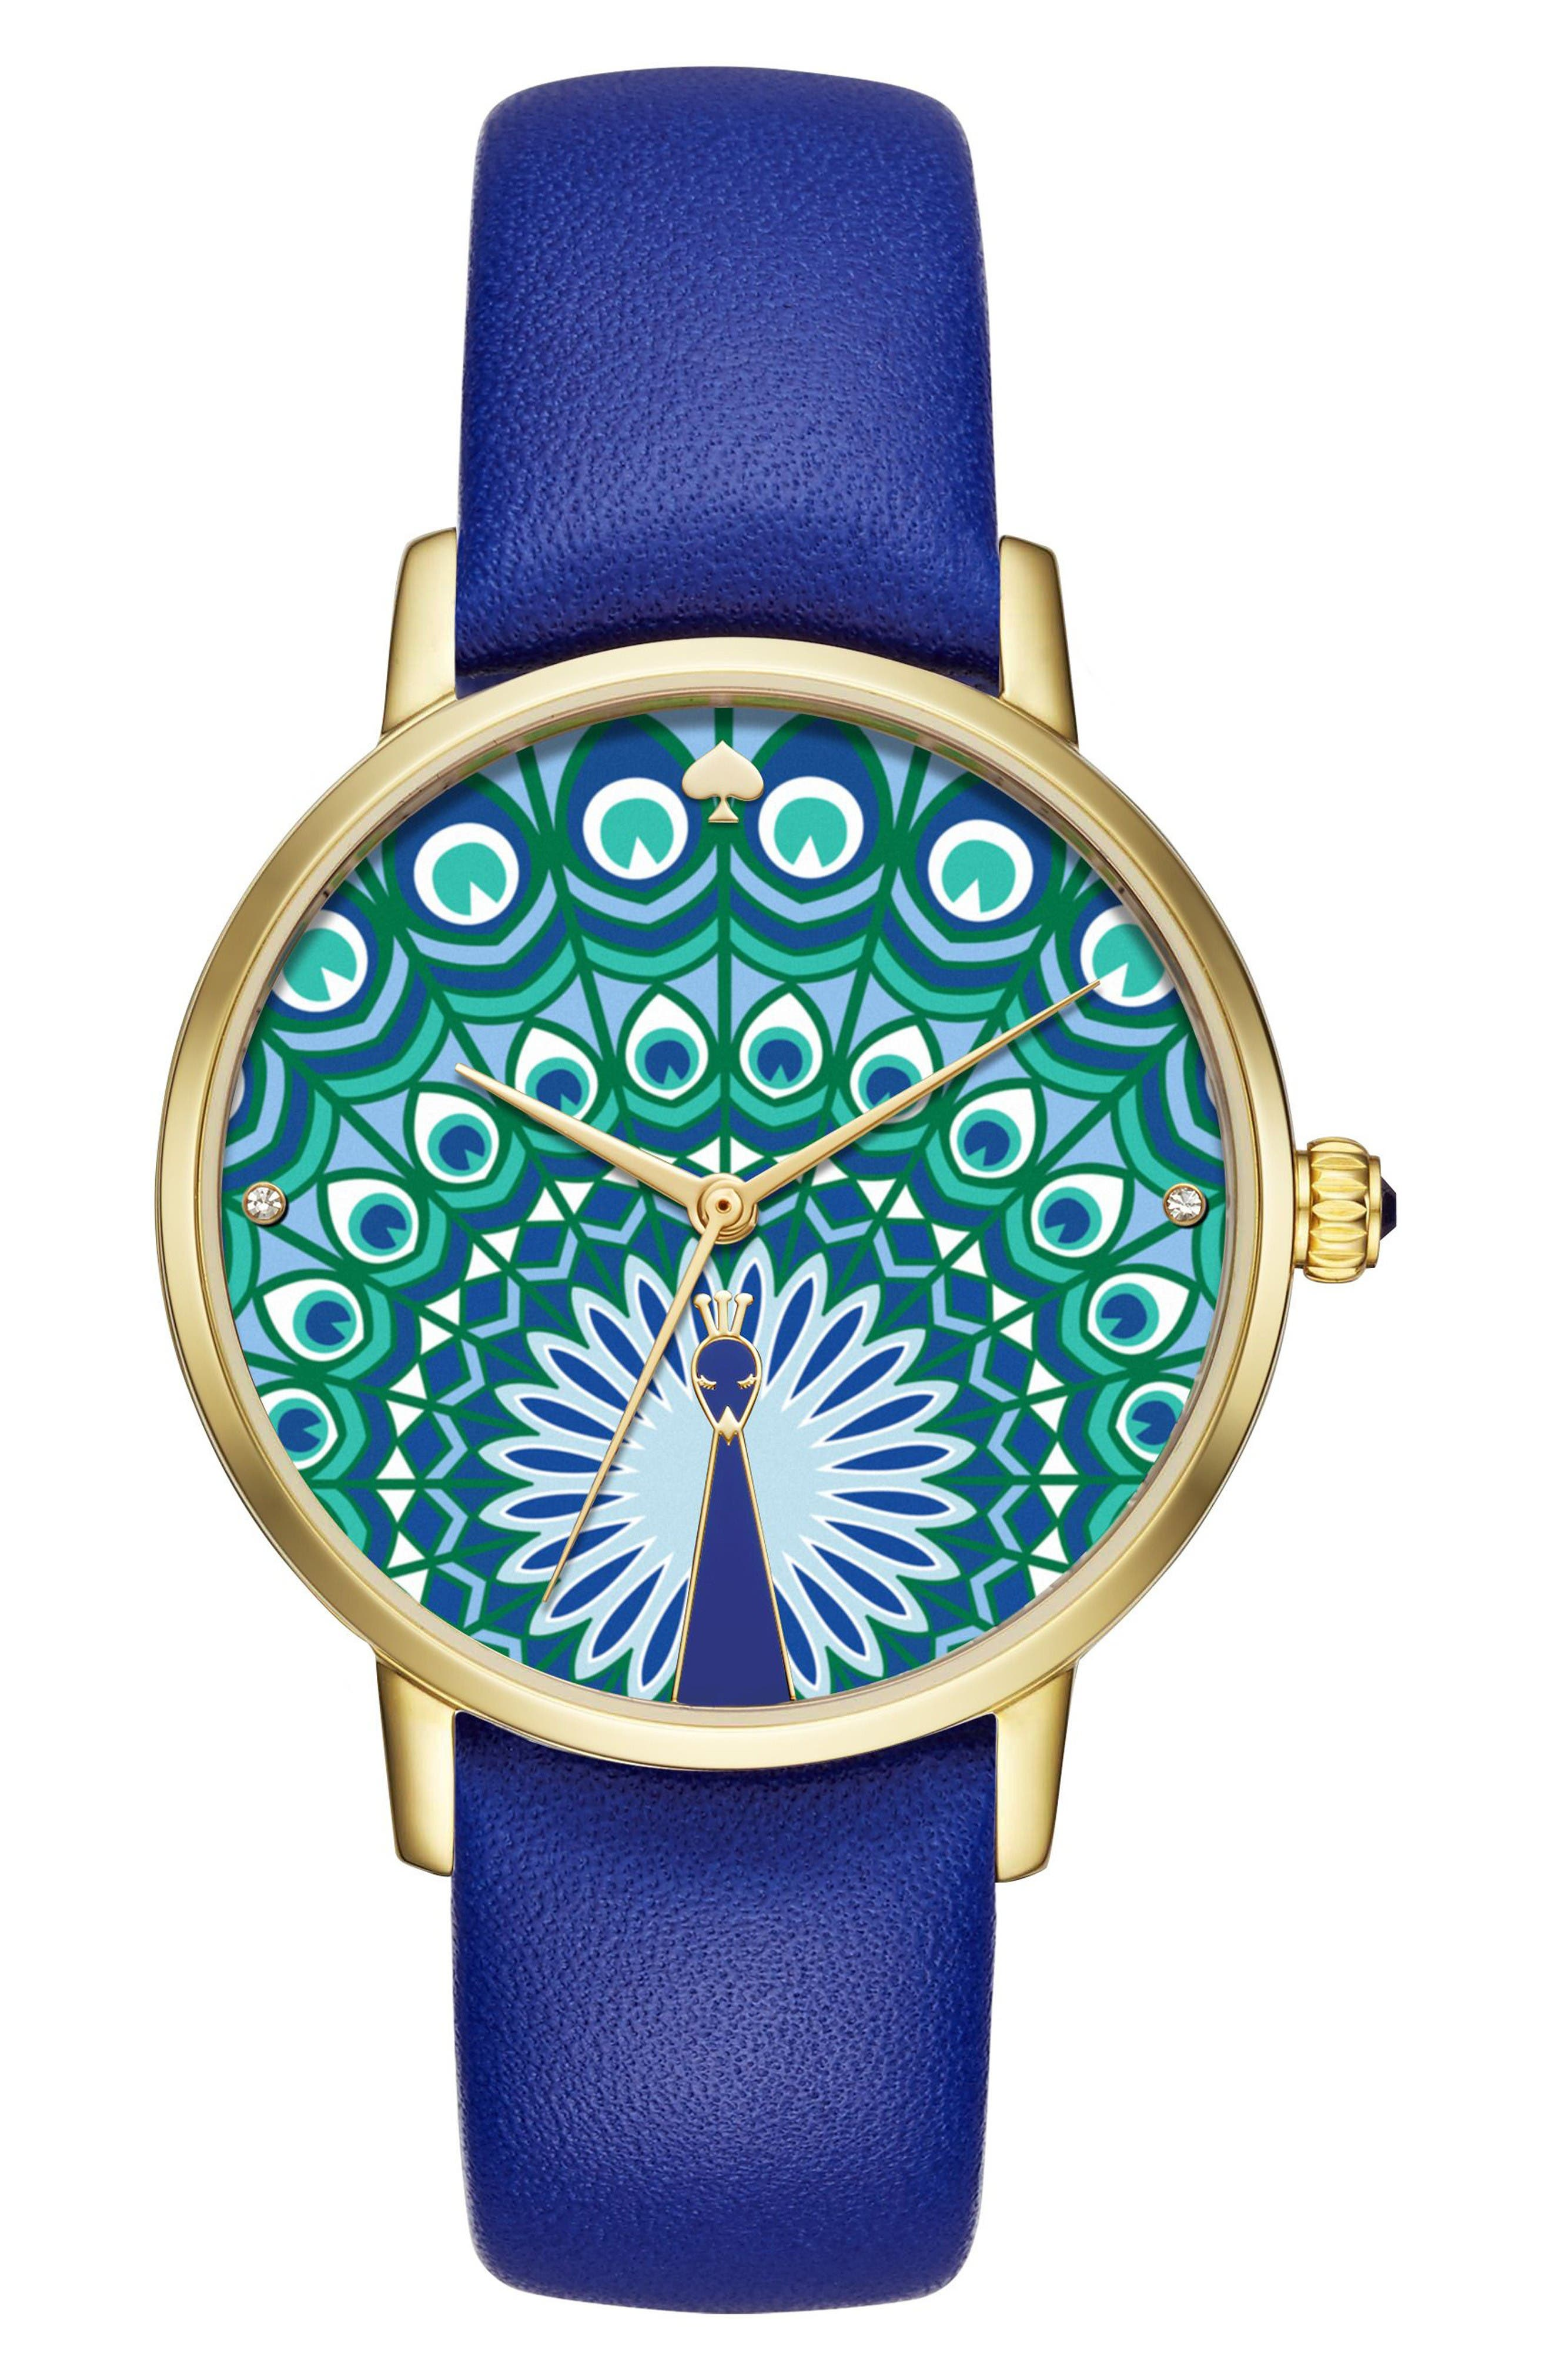 Main Image - kate spade new york metro peacock leather strap watch, 34mm